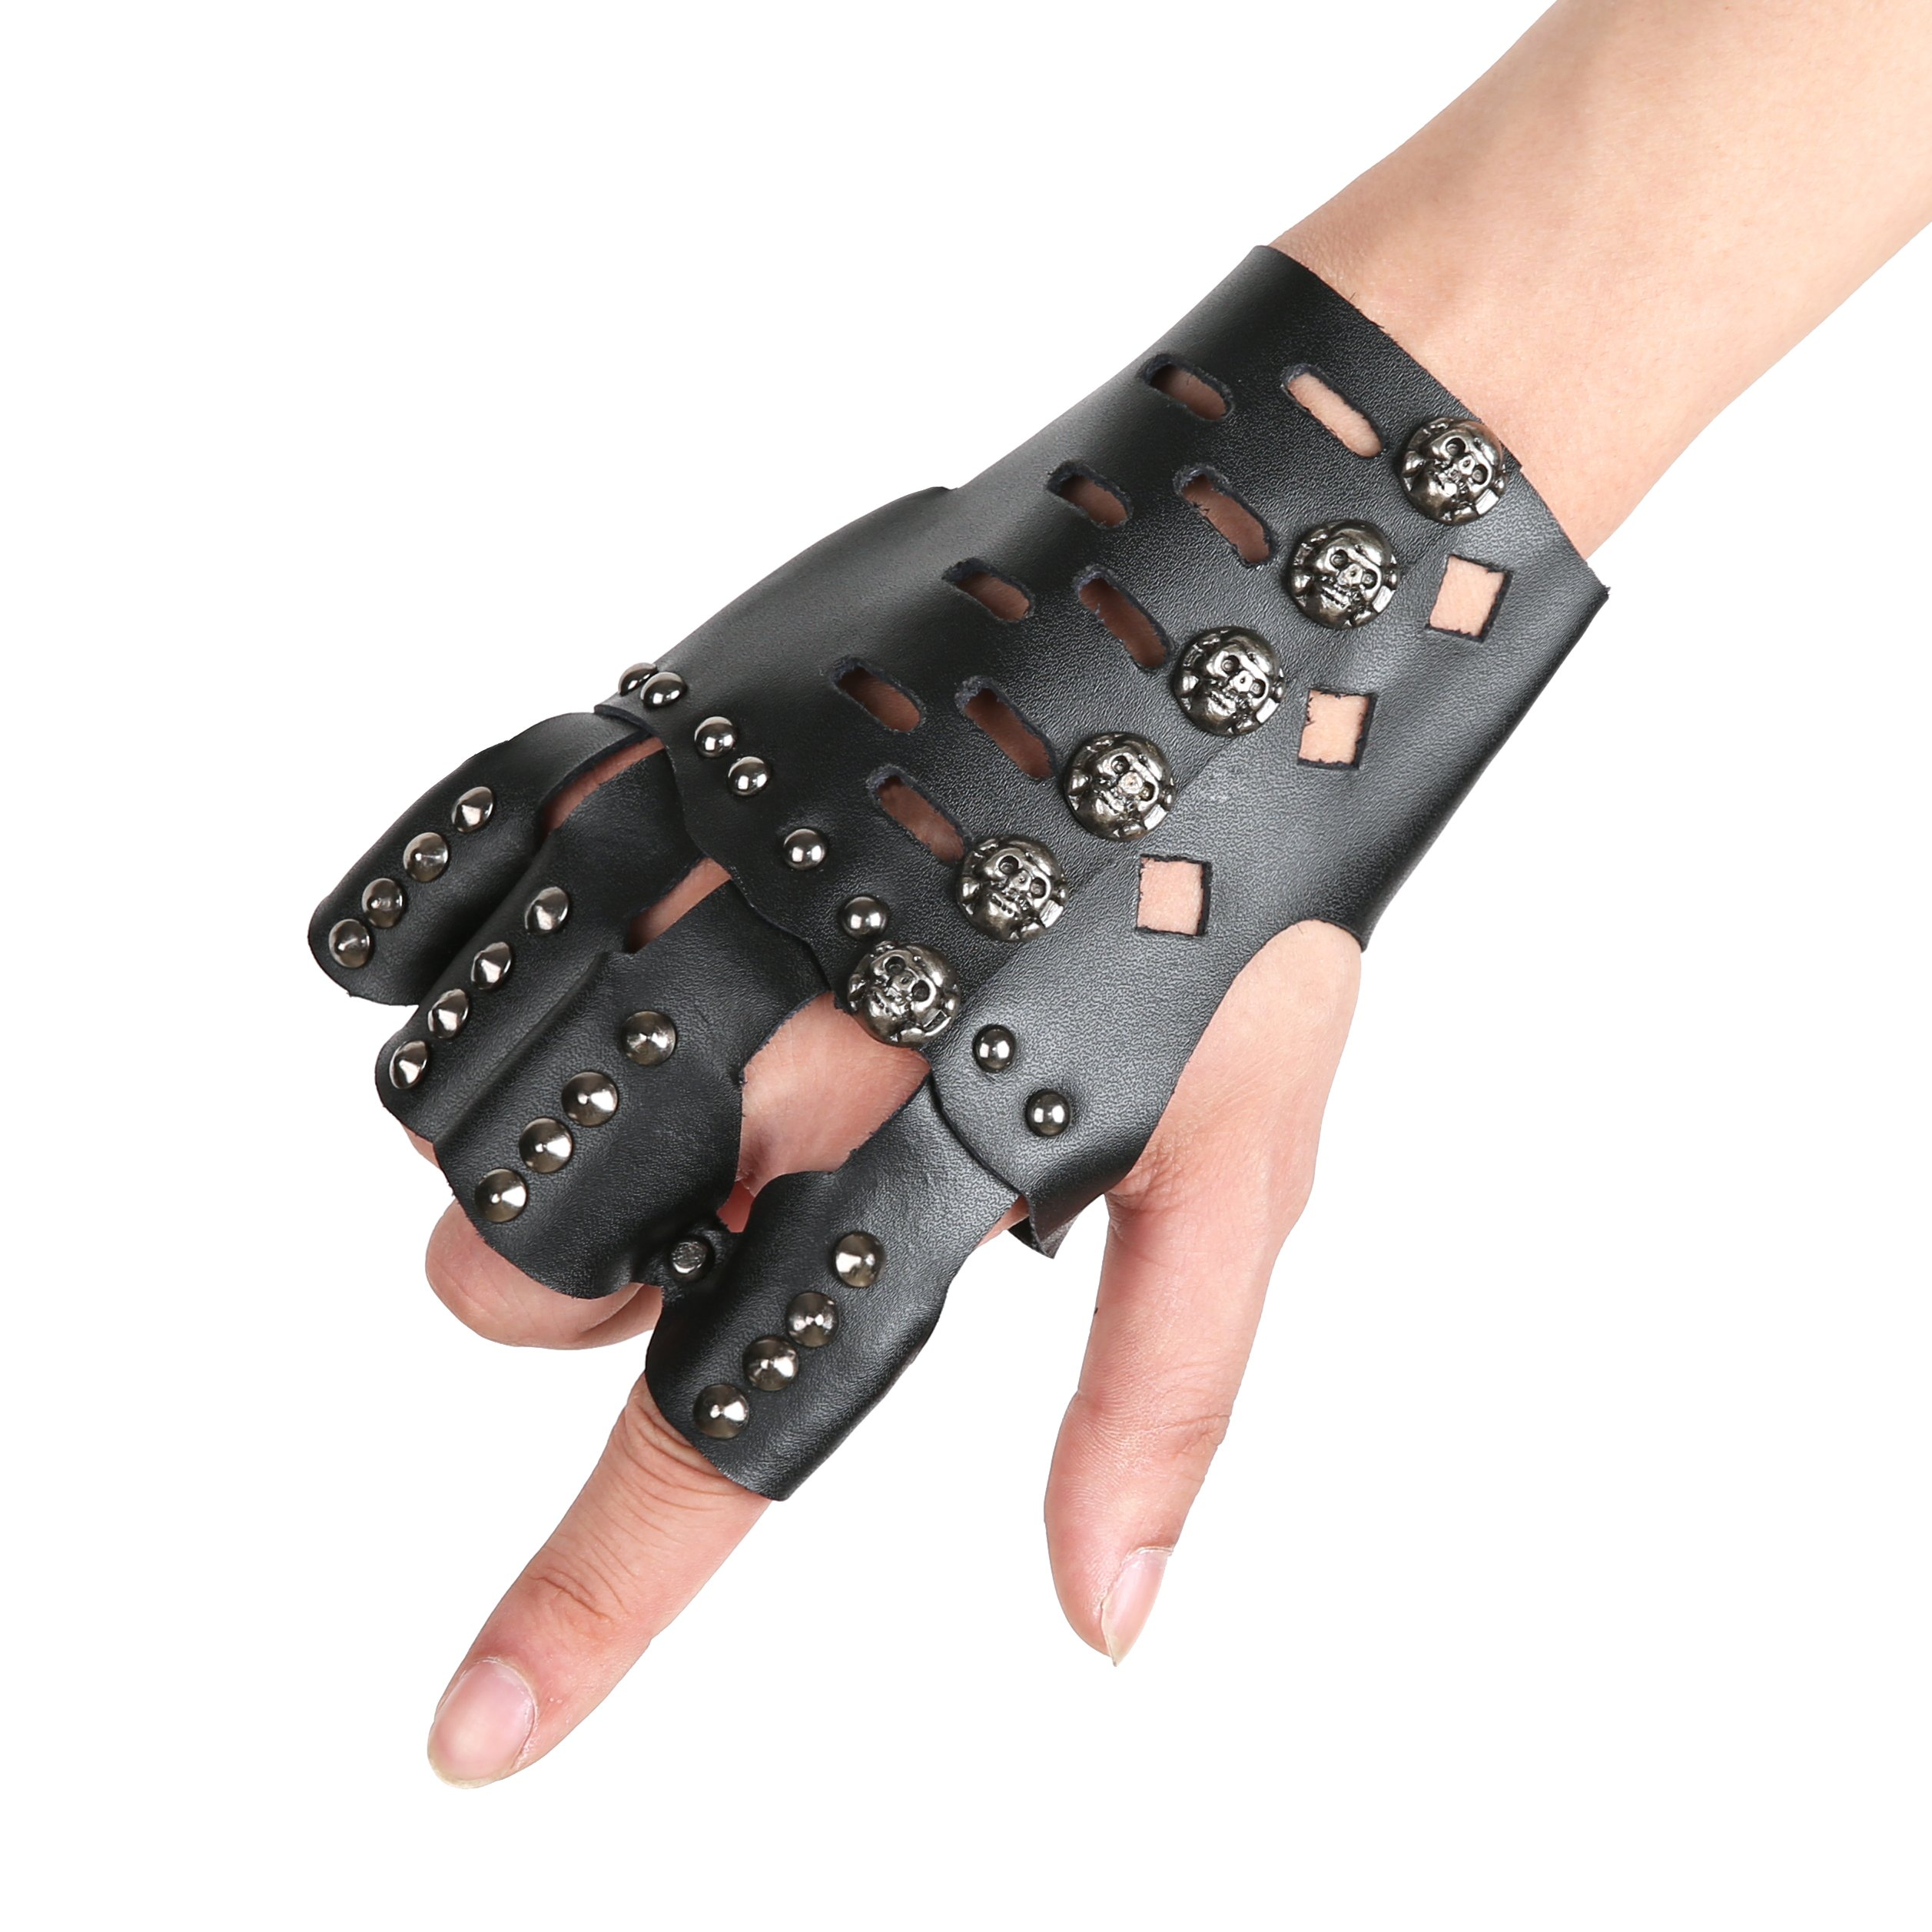 HZMAN Black Leather Fingerless Skull Metal Cycling Rock Gothic Punk Gloves Cuff Gauntlet Bracelet (B) by HZMAN